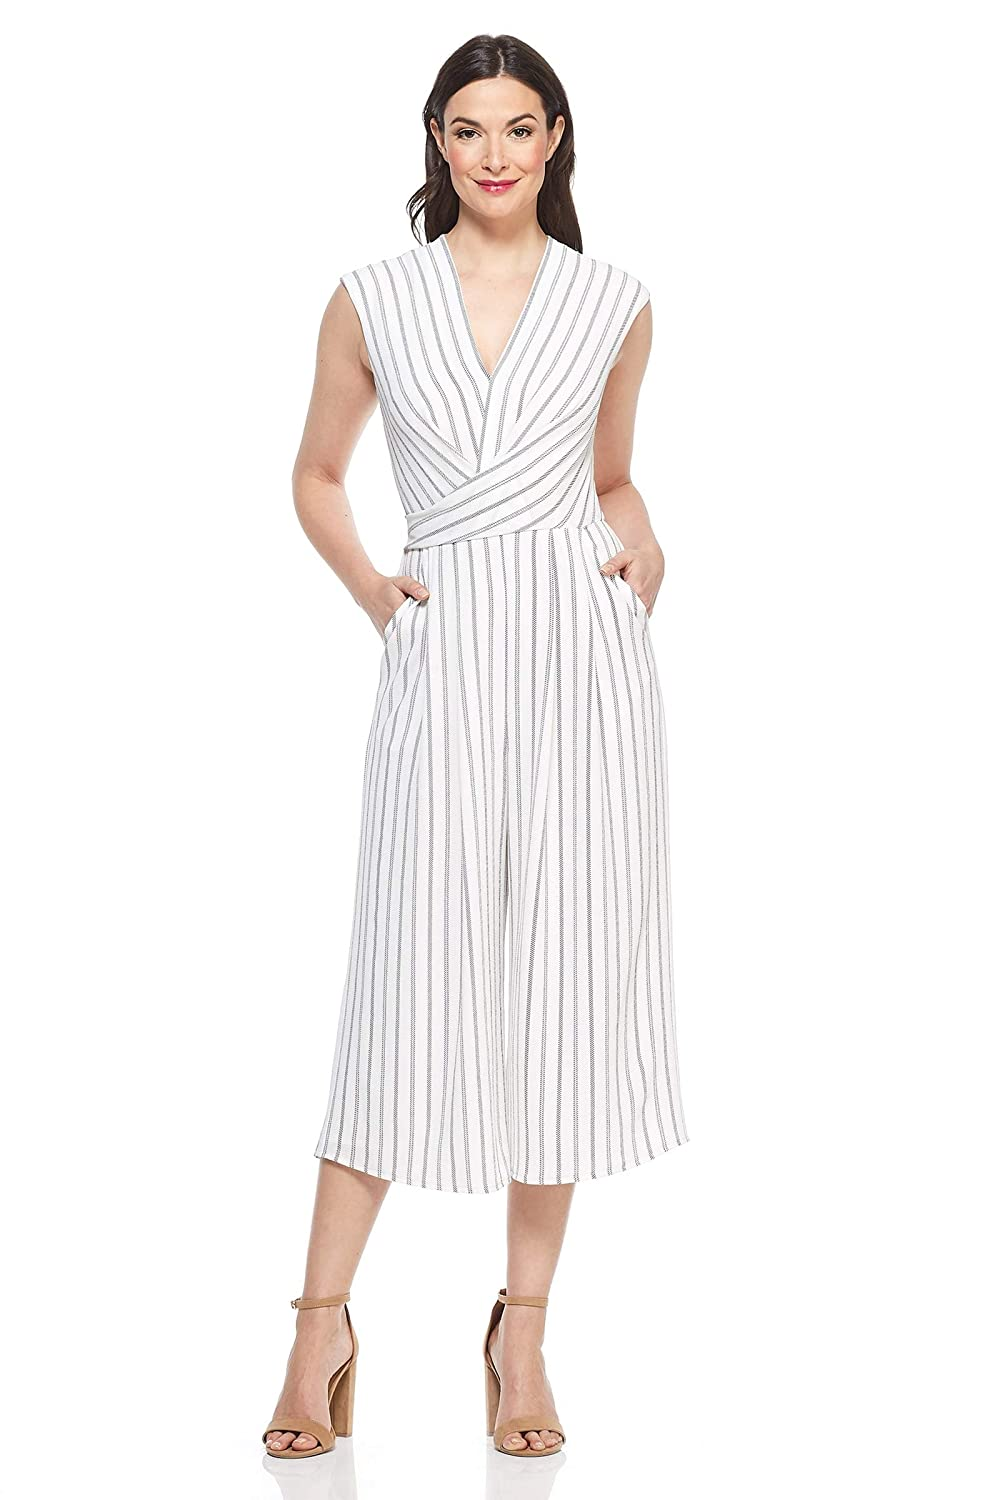 Soft White Black Maggy London Women's Rope Stripe Drape Neck Novelty Jumpsuit